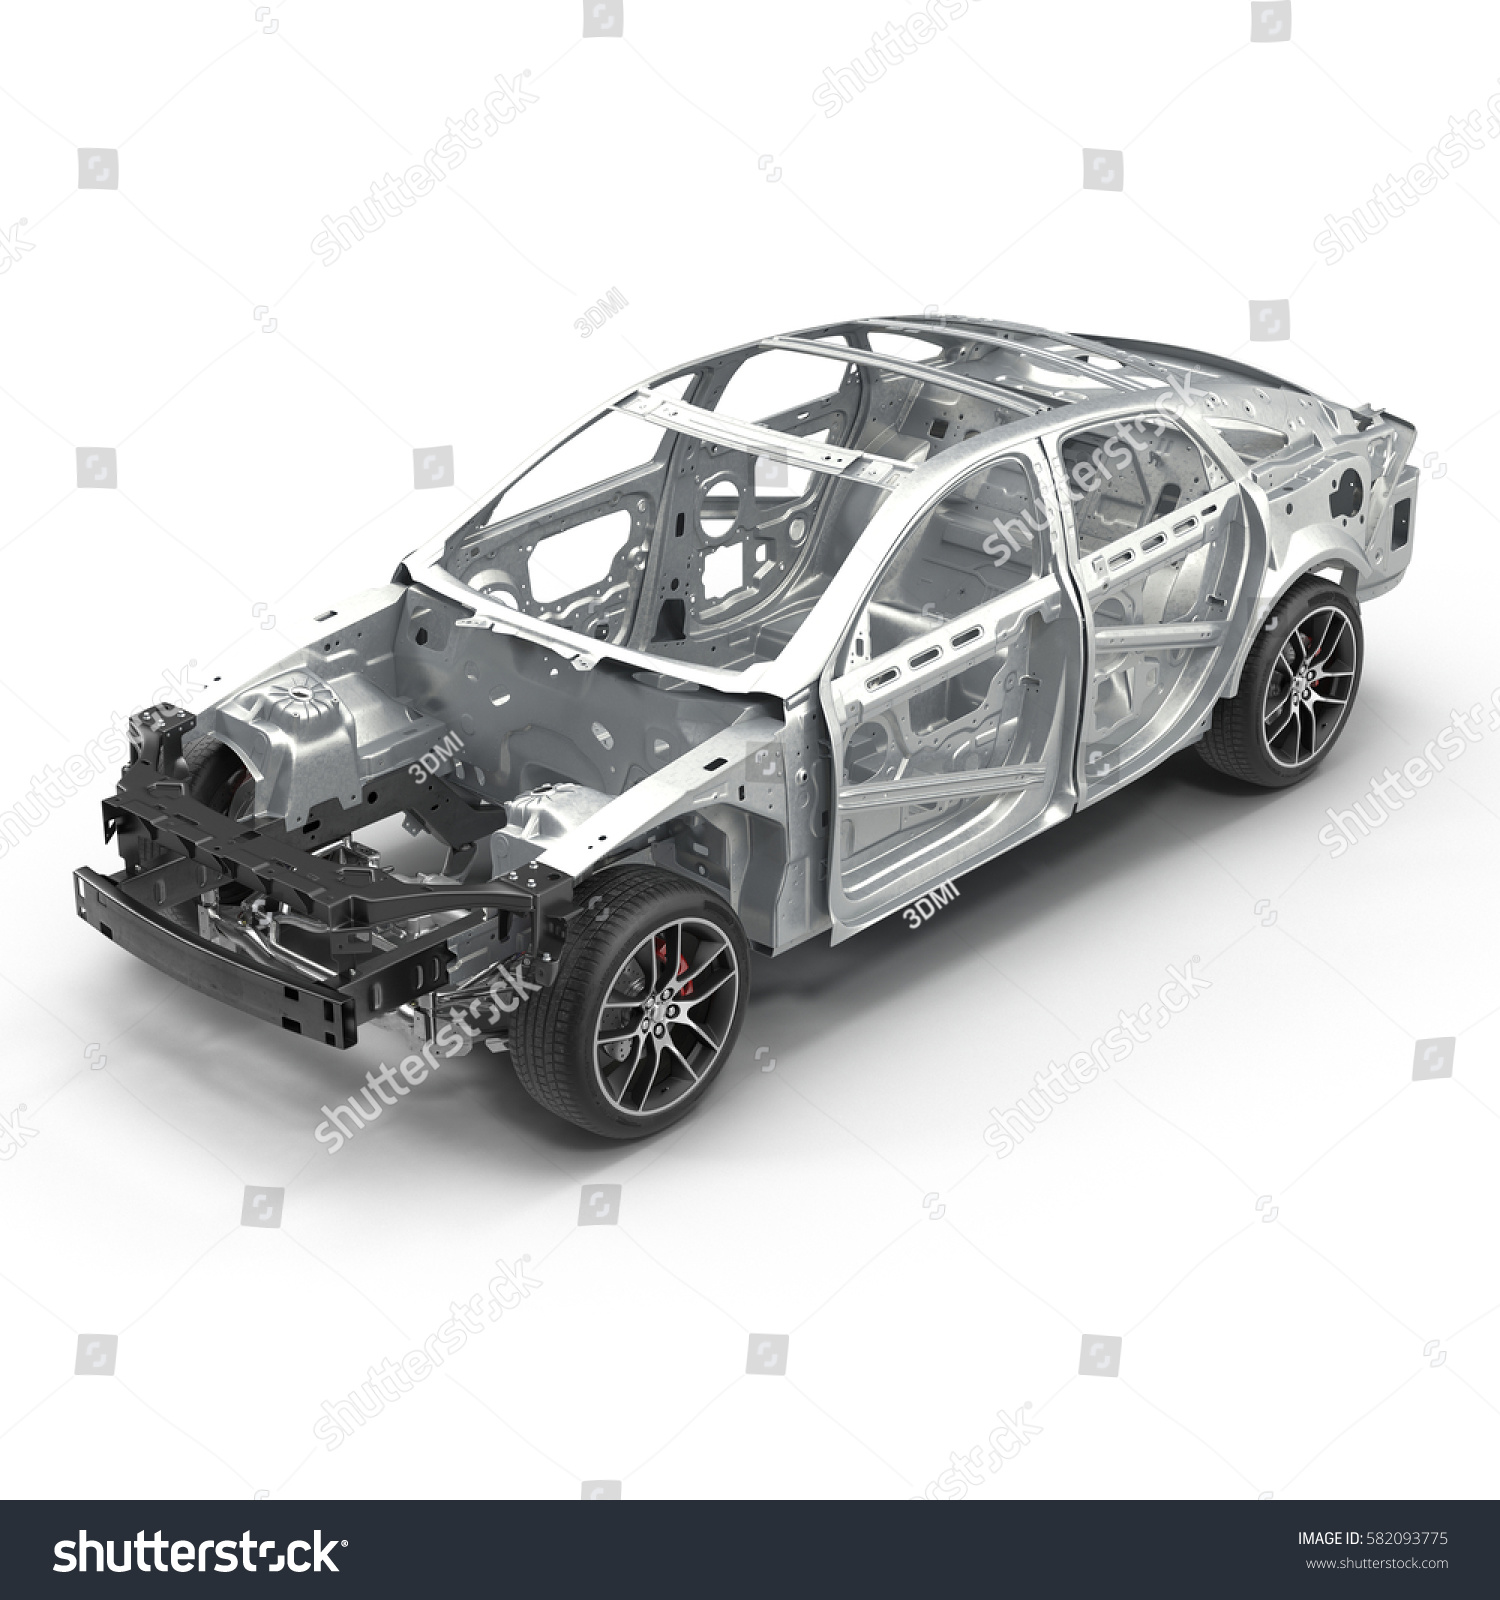 Design of car frame - Angle From Up Car Frame With Chassis On White 3d Illustration